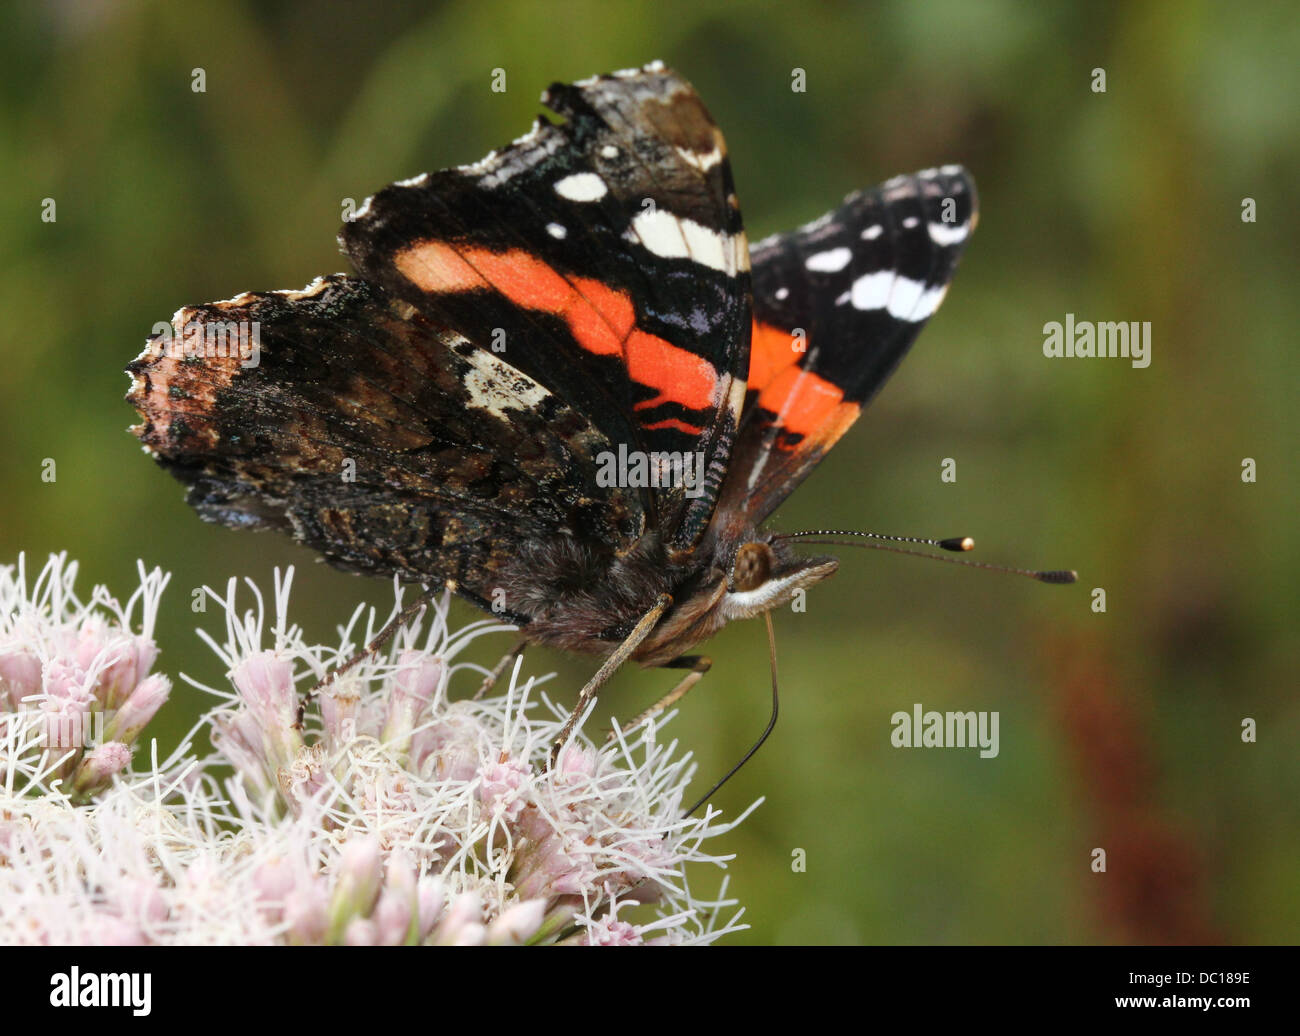 Red admiral butterfly (vanessa atalanta) wings opened, feeding on a pink flower in summer - Stock Image